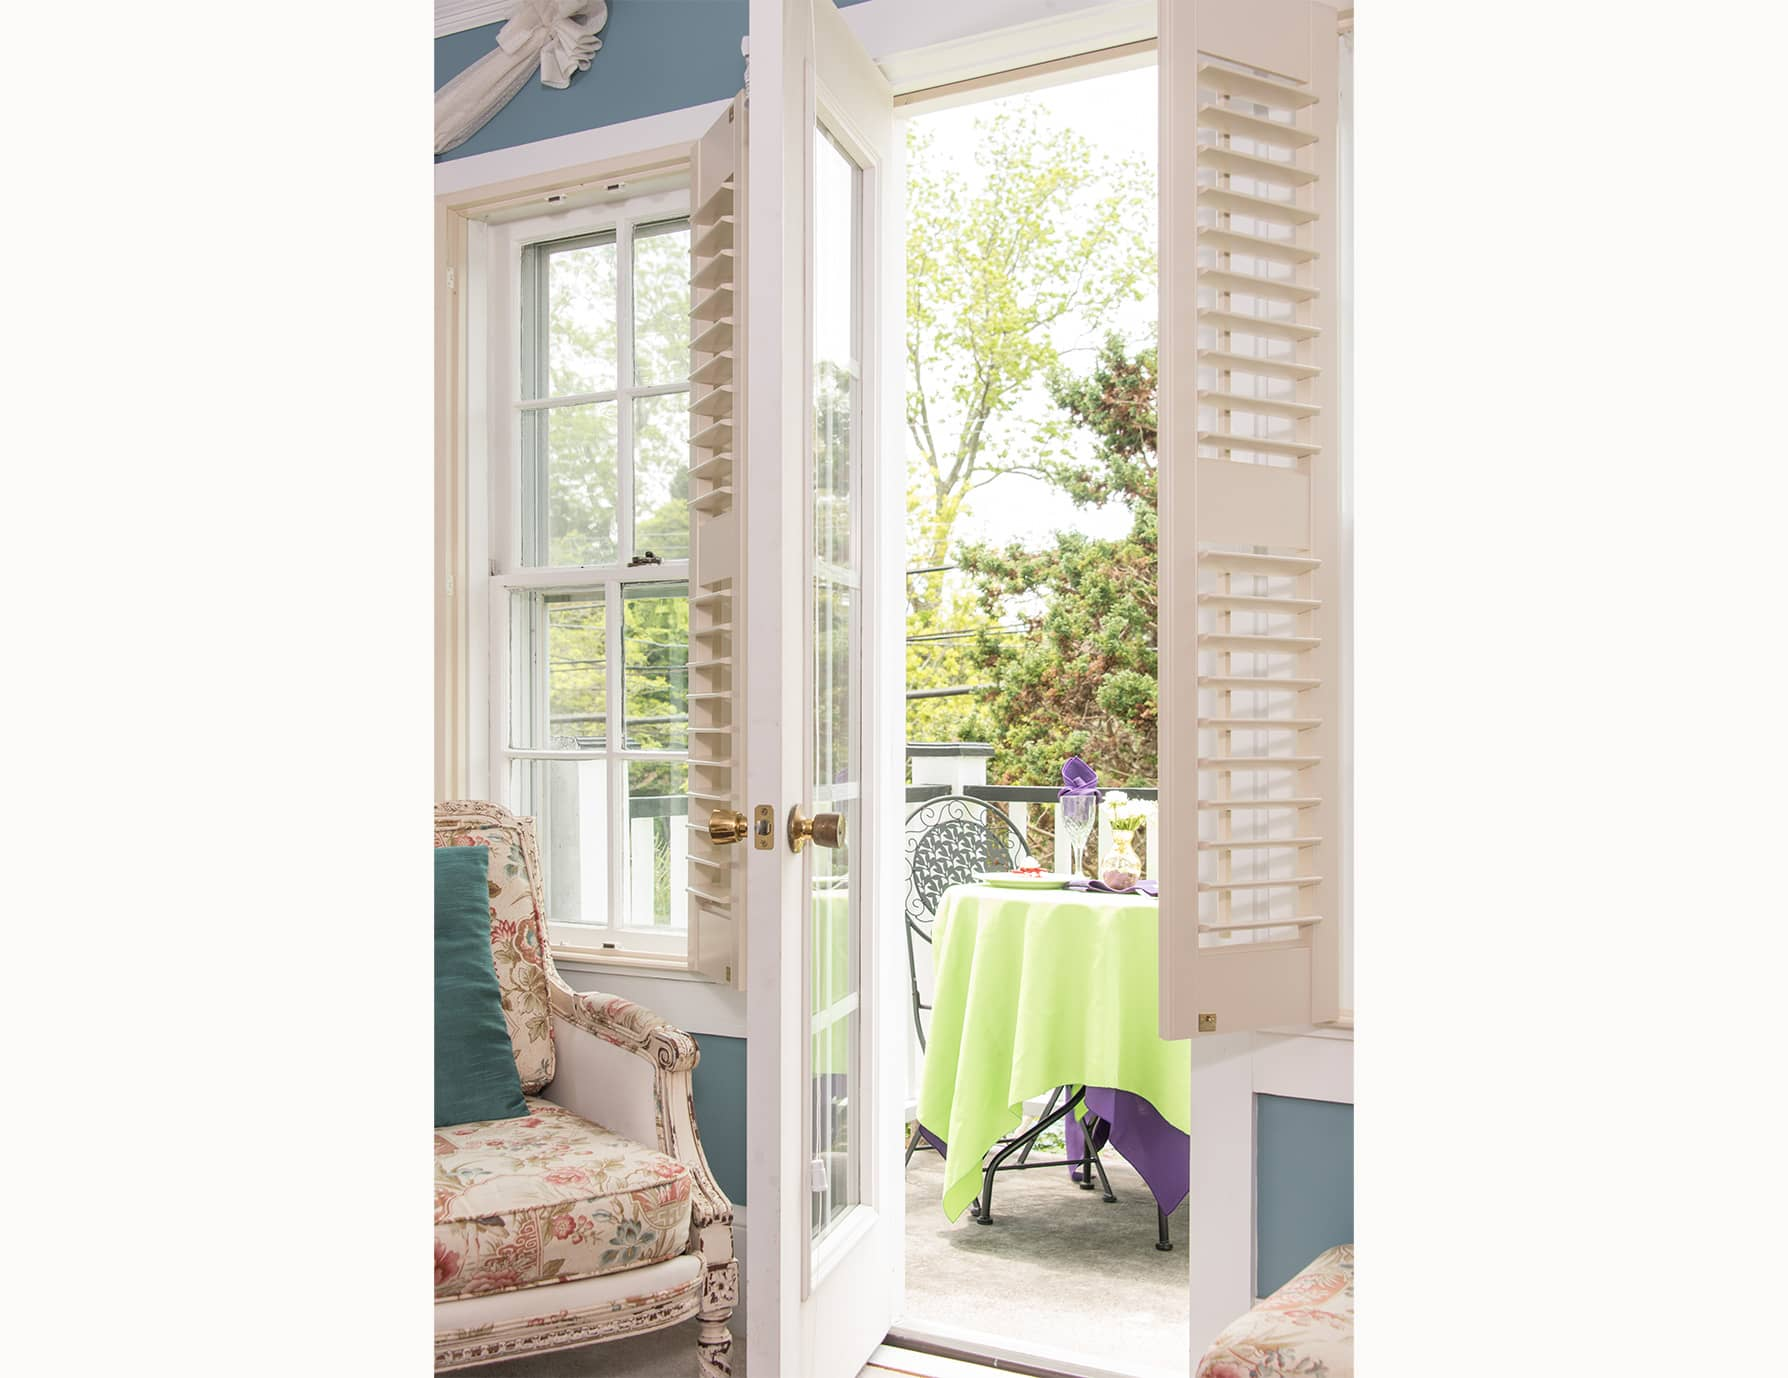 Double Doors to Private Patio at Our Roanoke Island Bed and Breakfast